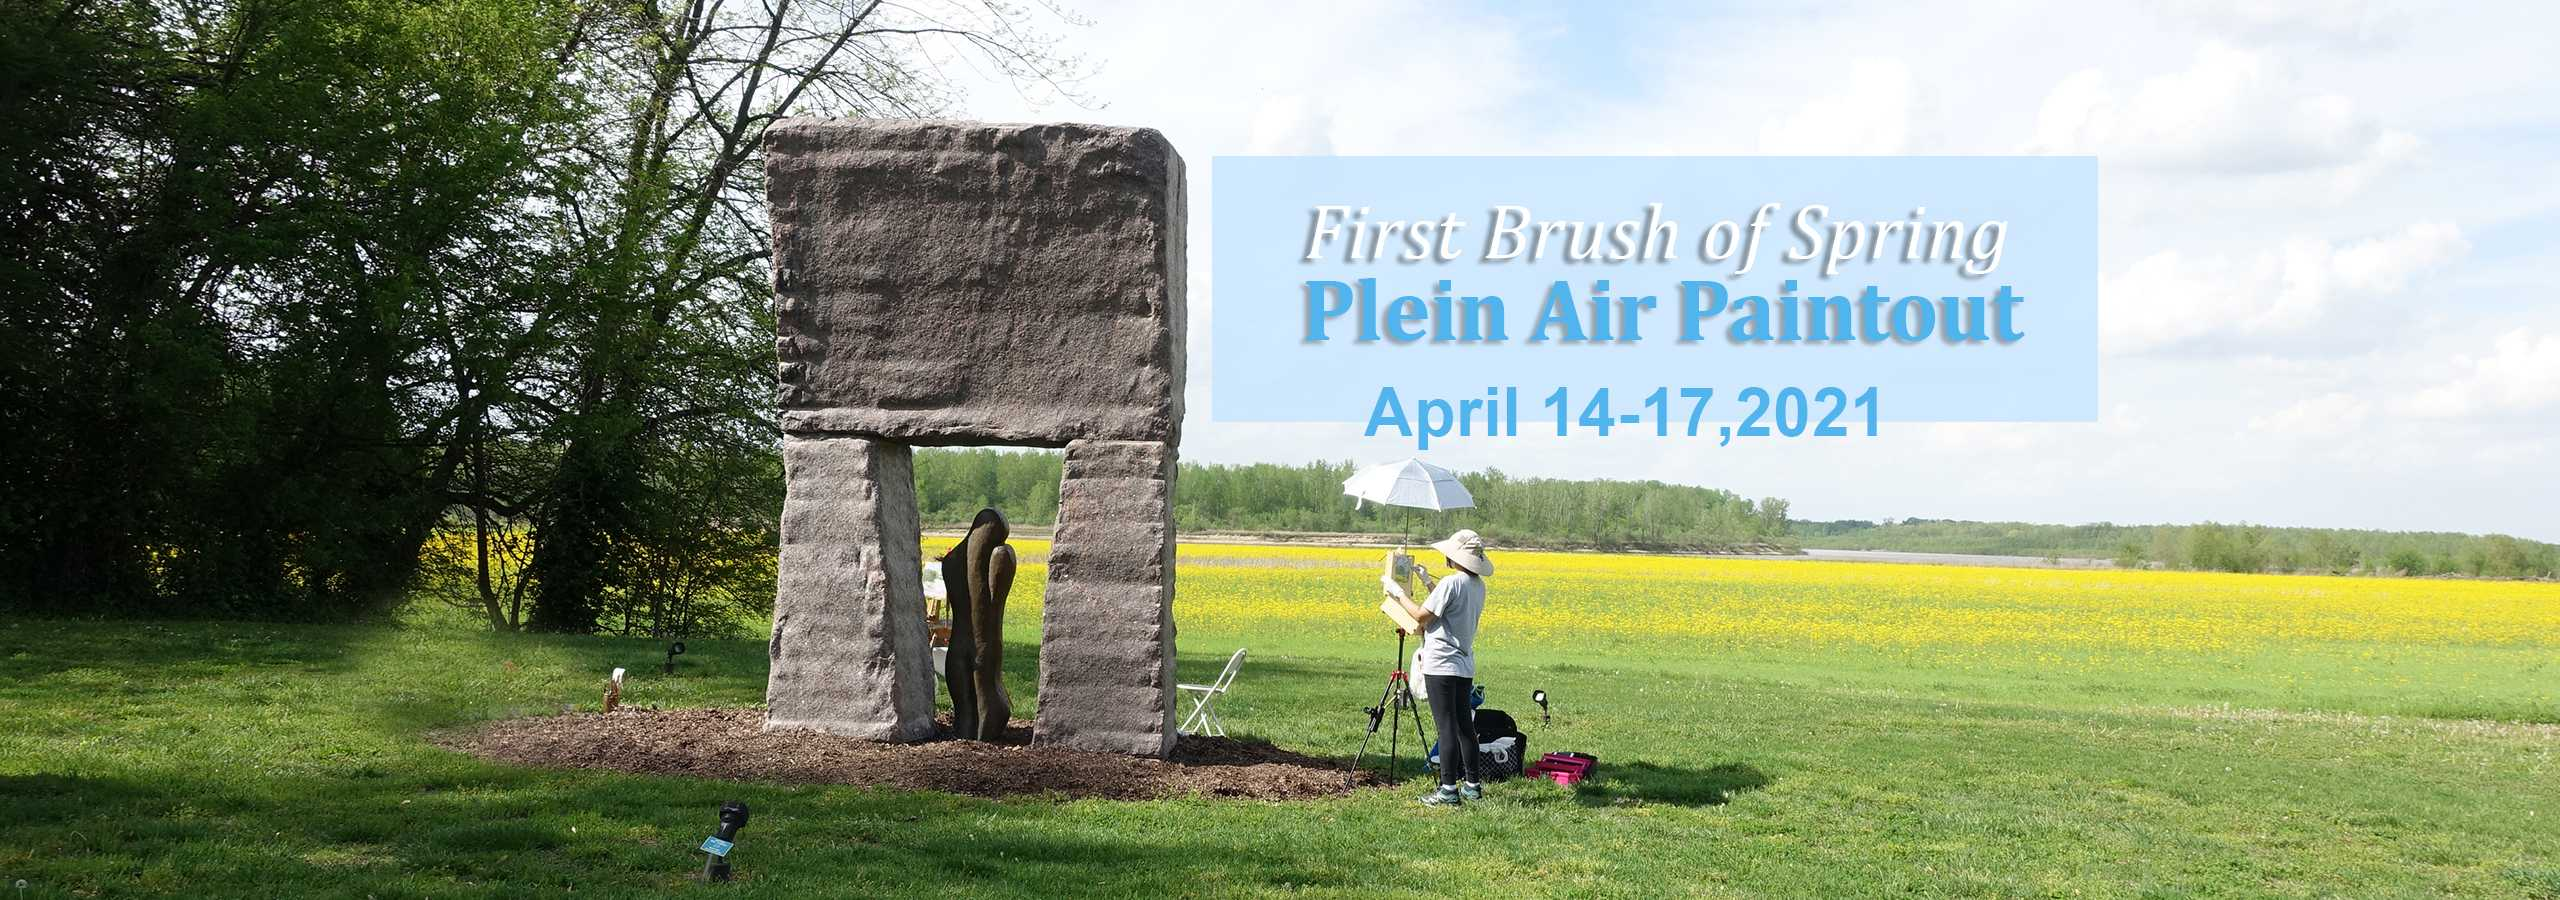 First Brush of Spring Plein Air Paintout